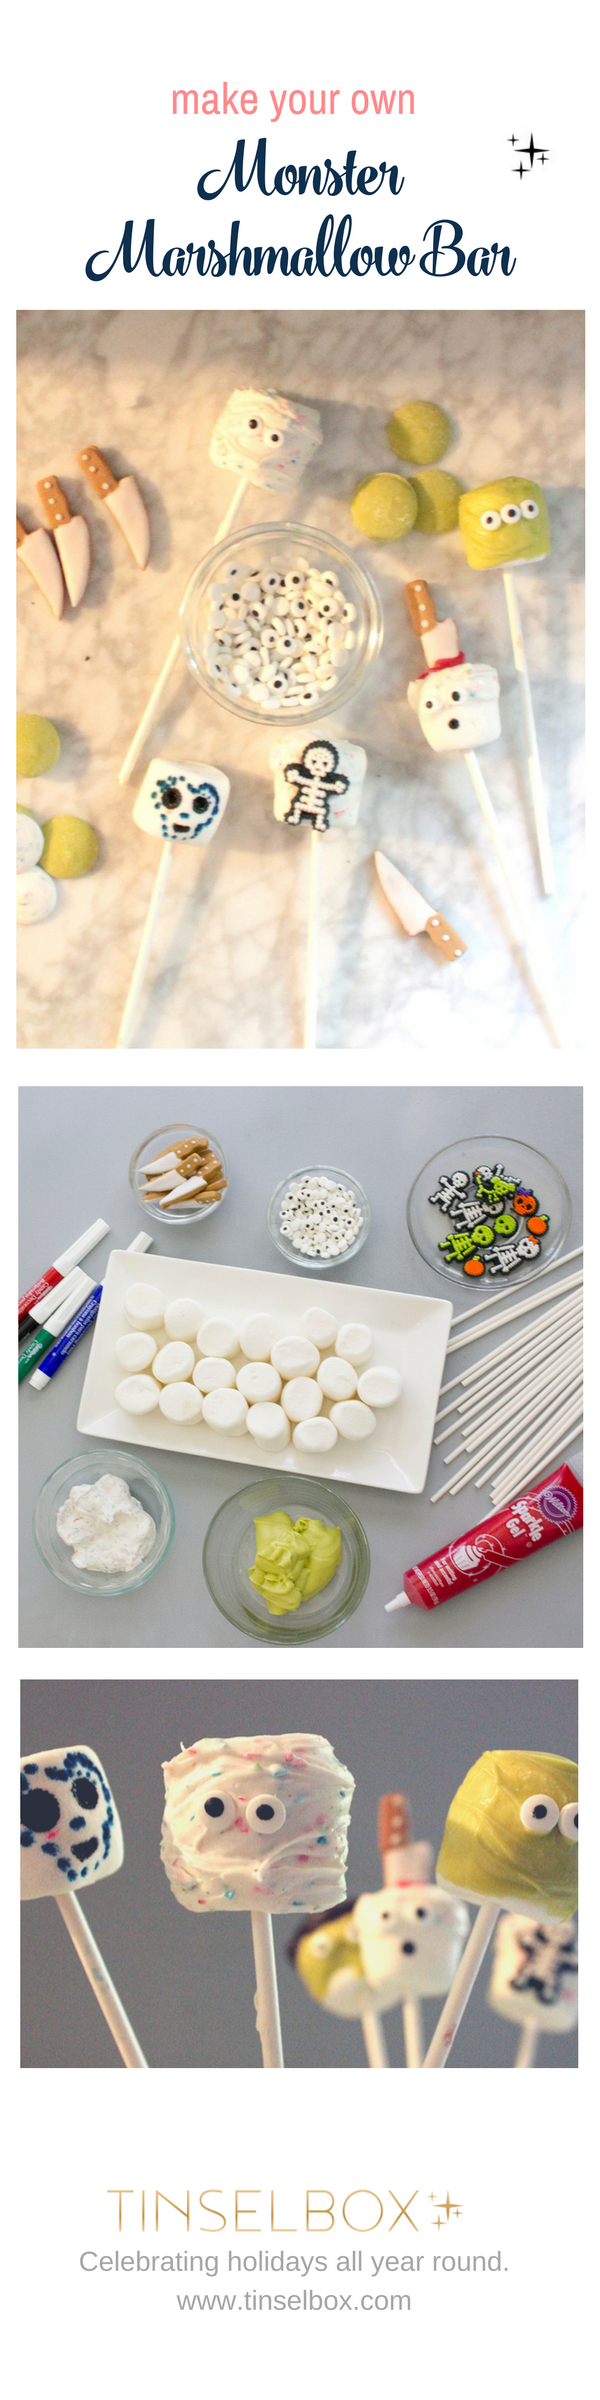 make-your-own-monster-marshmallow-bar-20